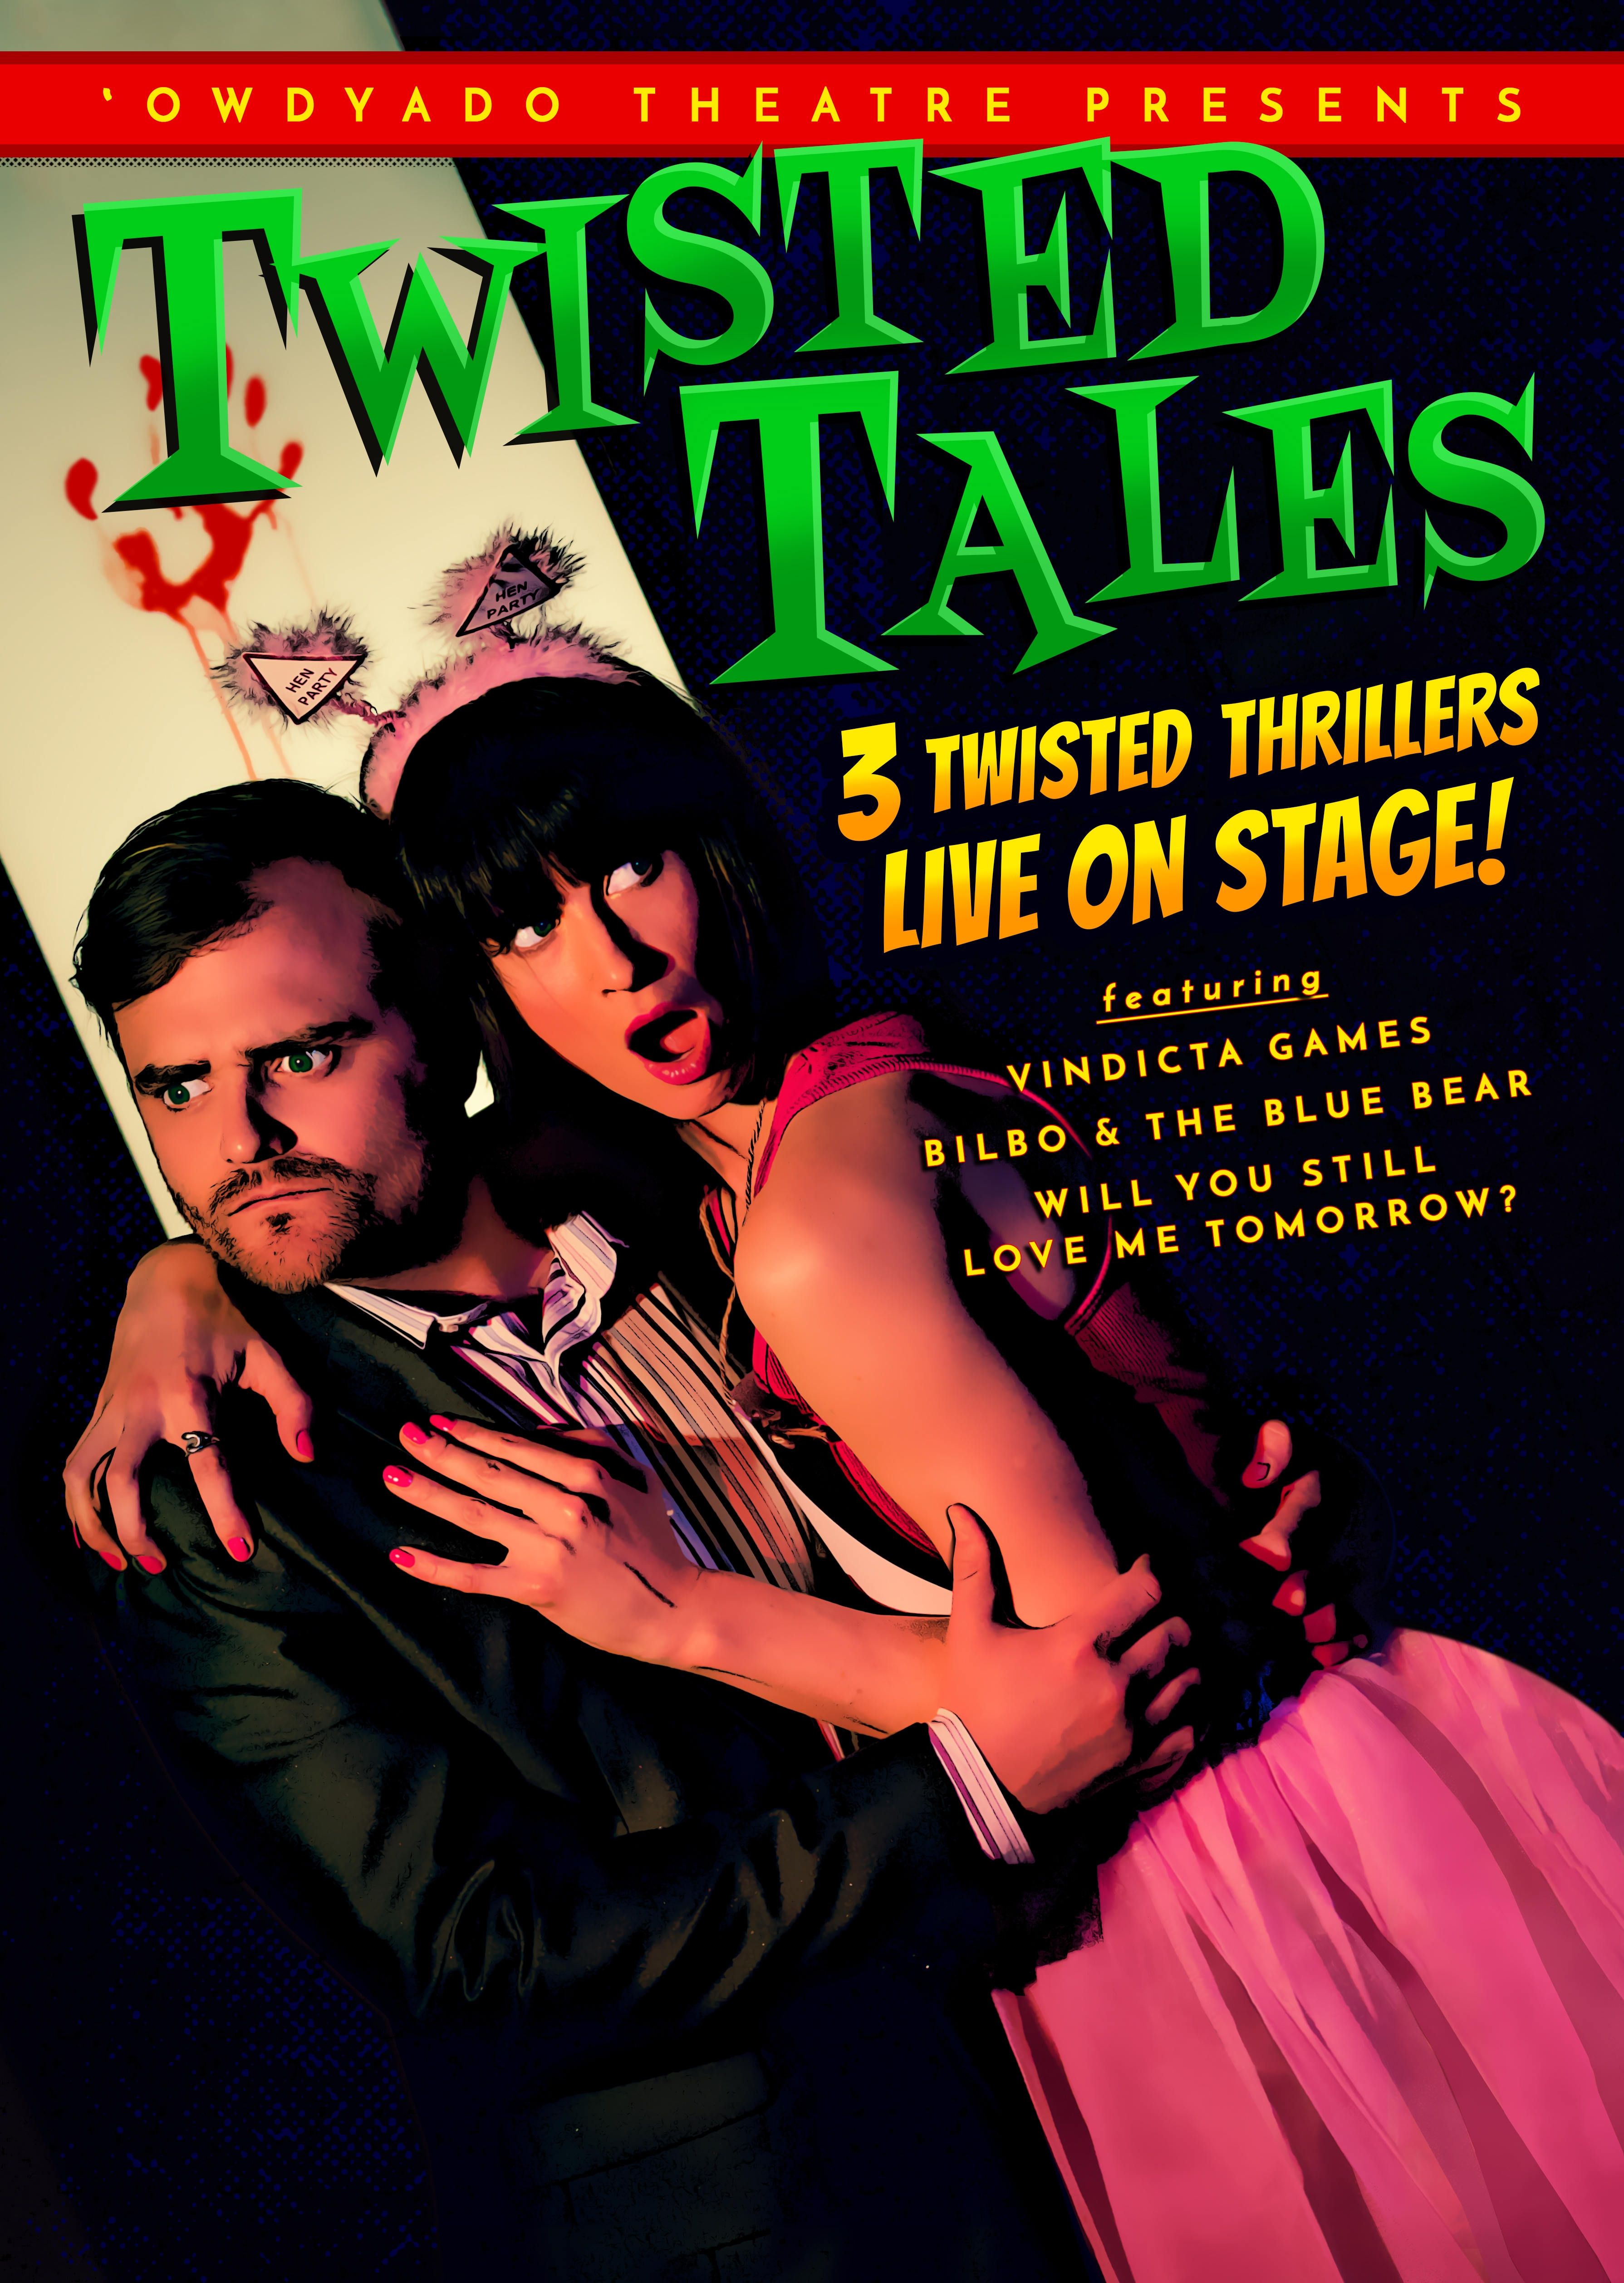 TWISTED_TALES_For_Poster_A3_NO_OVERPRINT_1